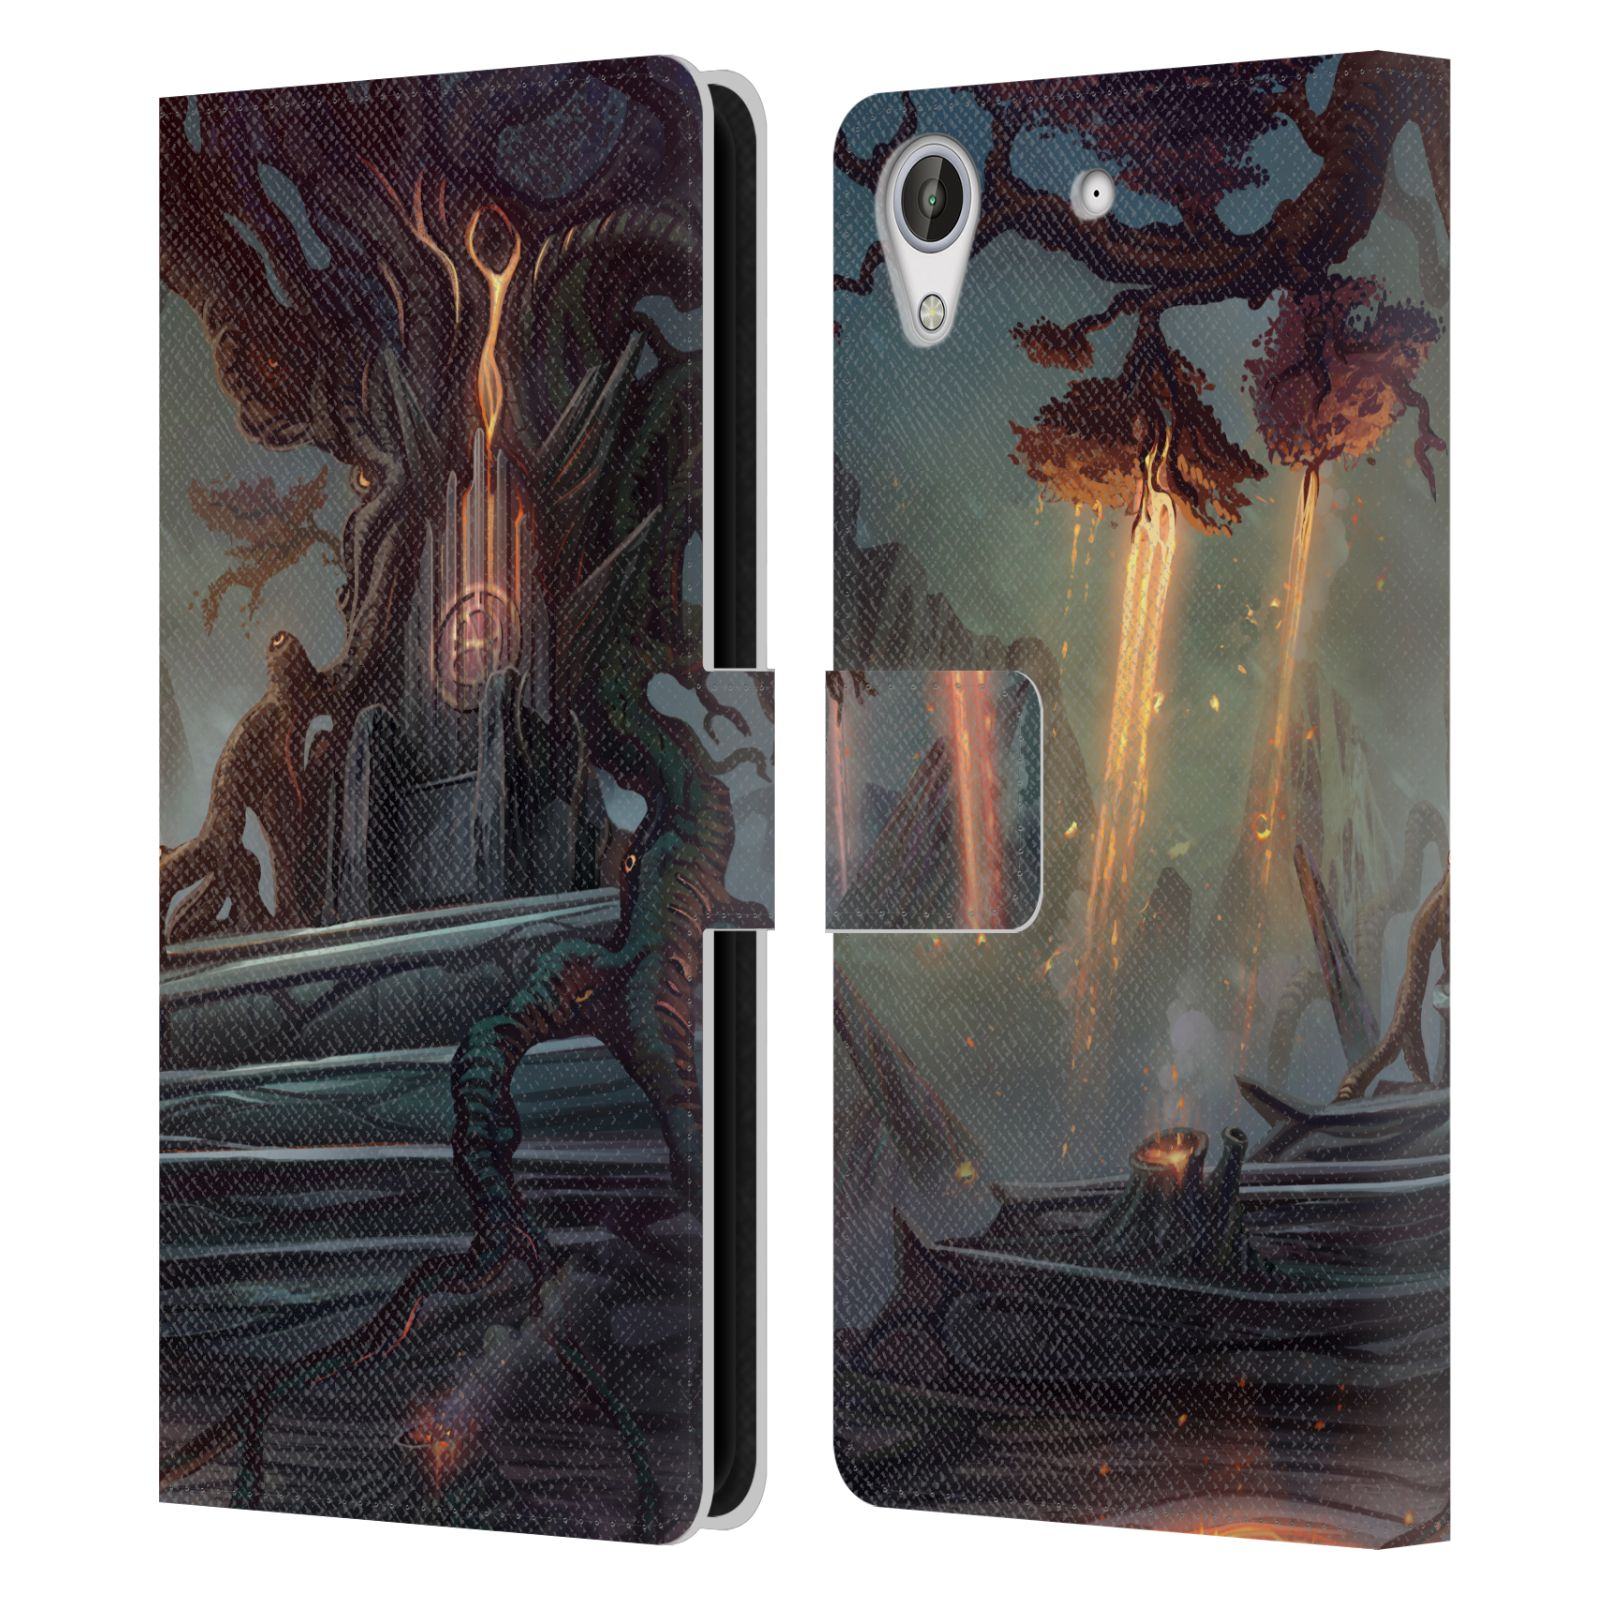 OFFICIAL-ALYN-SPILLER-ENVIRONMENT-ART-LEATHER-BOOK-WALLET-CASE-FOR-HTC-PHONES-2